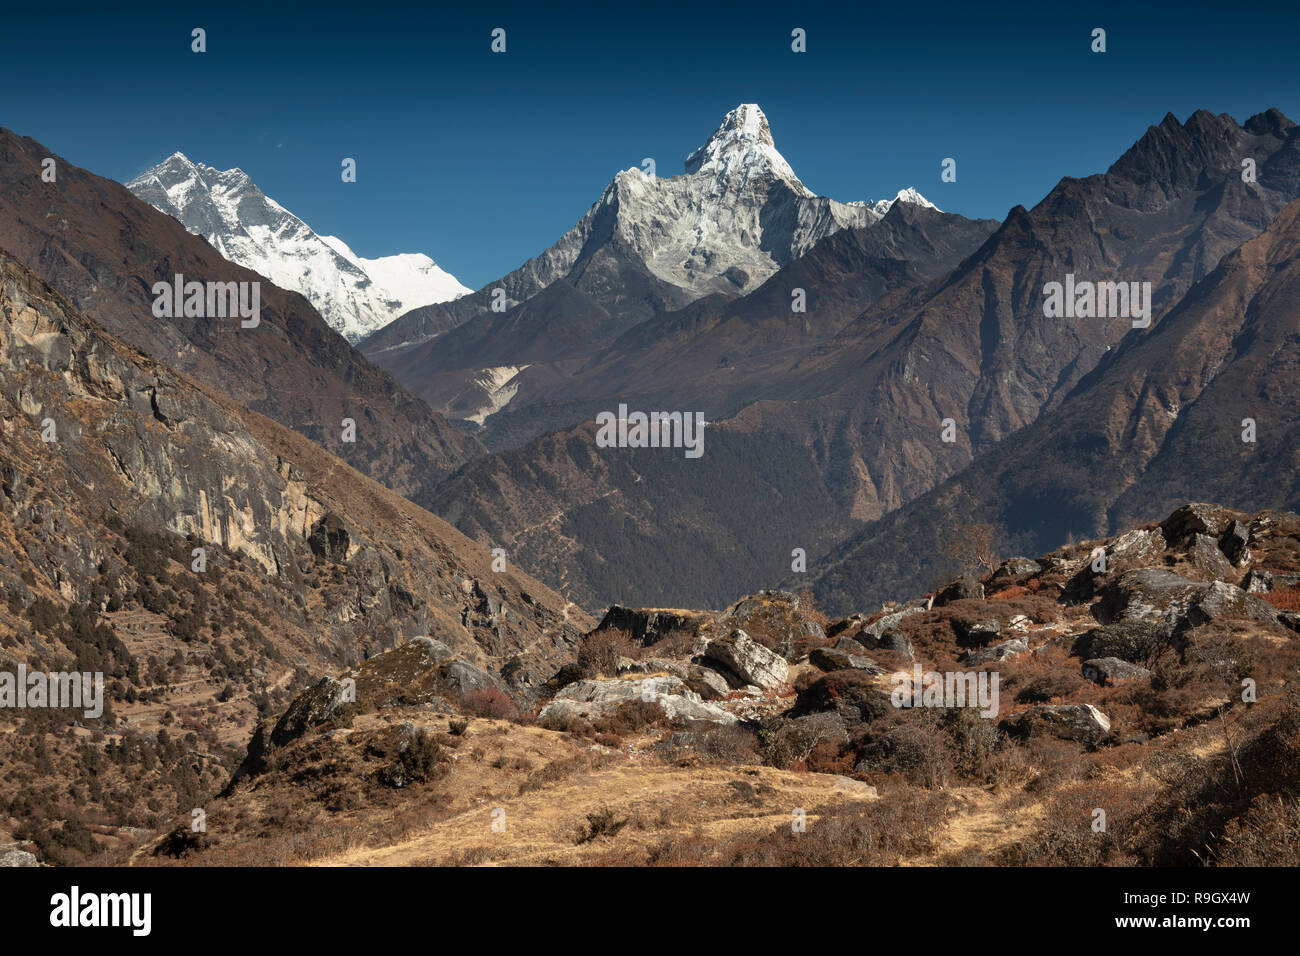 Nepal, Everest Base Camp Trek, Khumjung, view north to Lhotse and Ama Dablam mountains Stock Photo